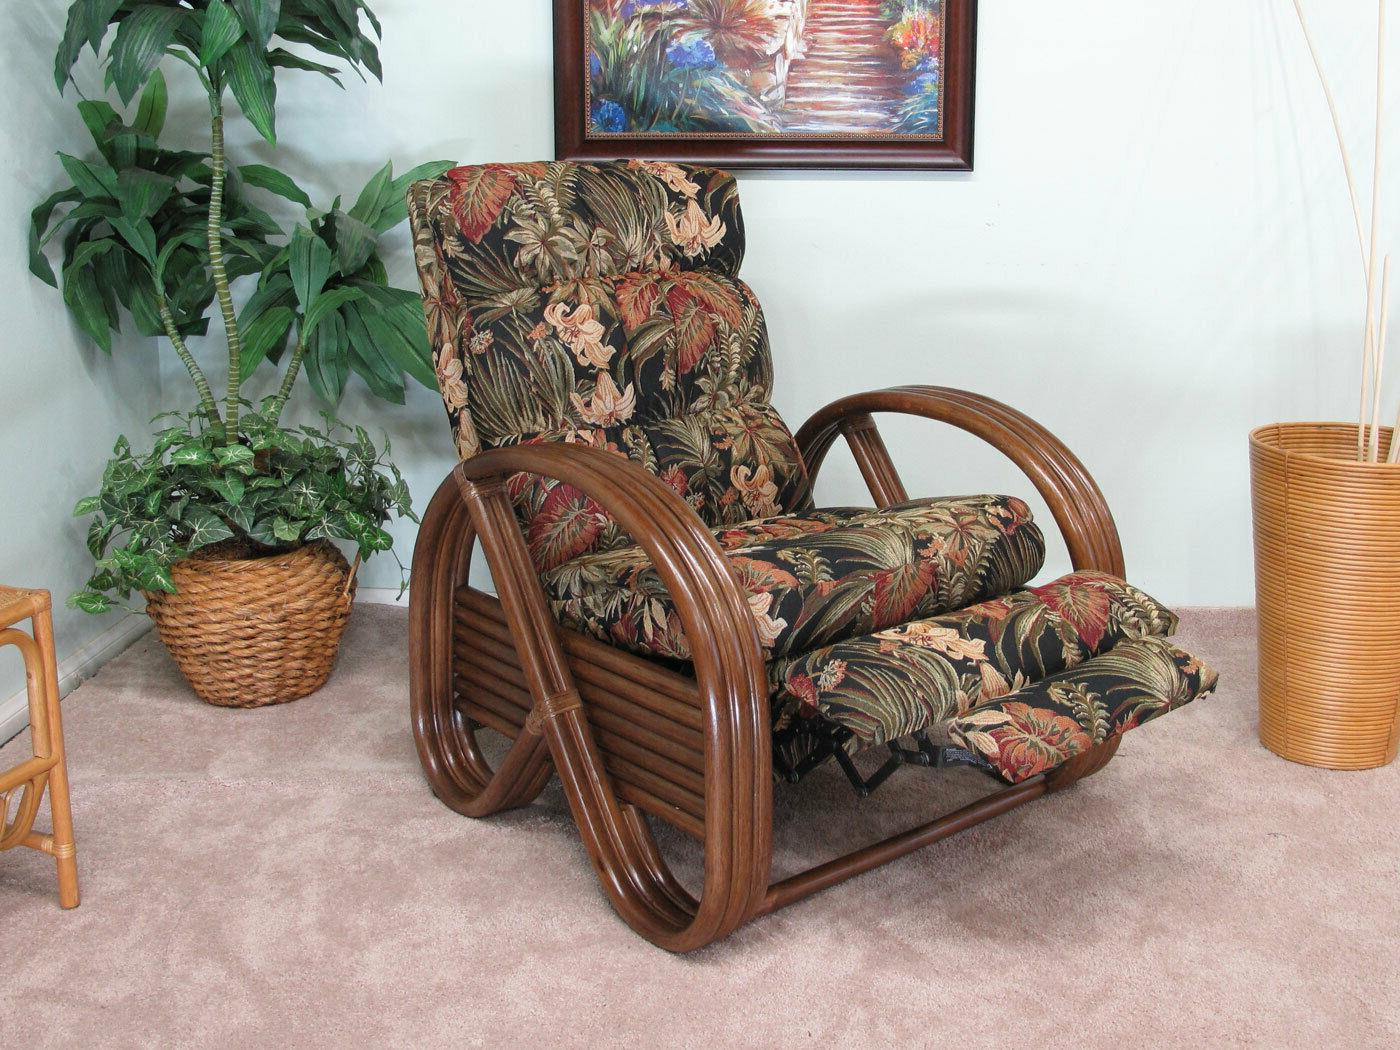 Made in Recliner Chair